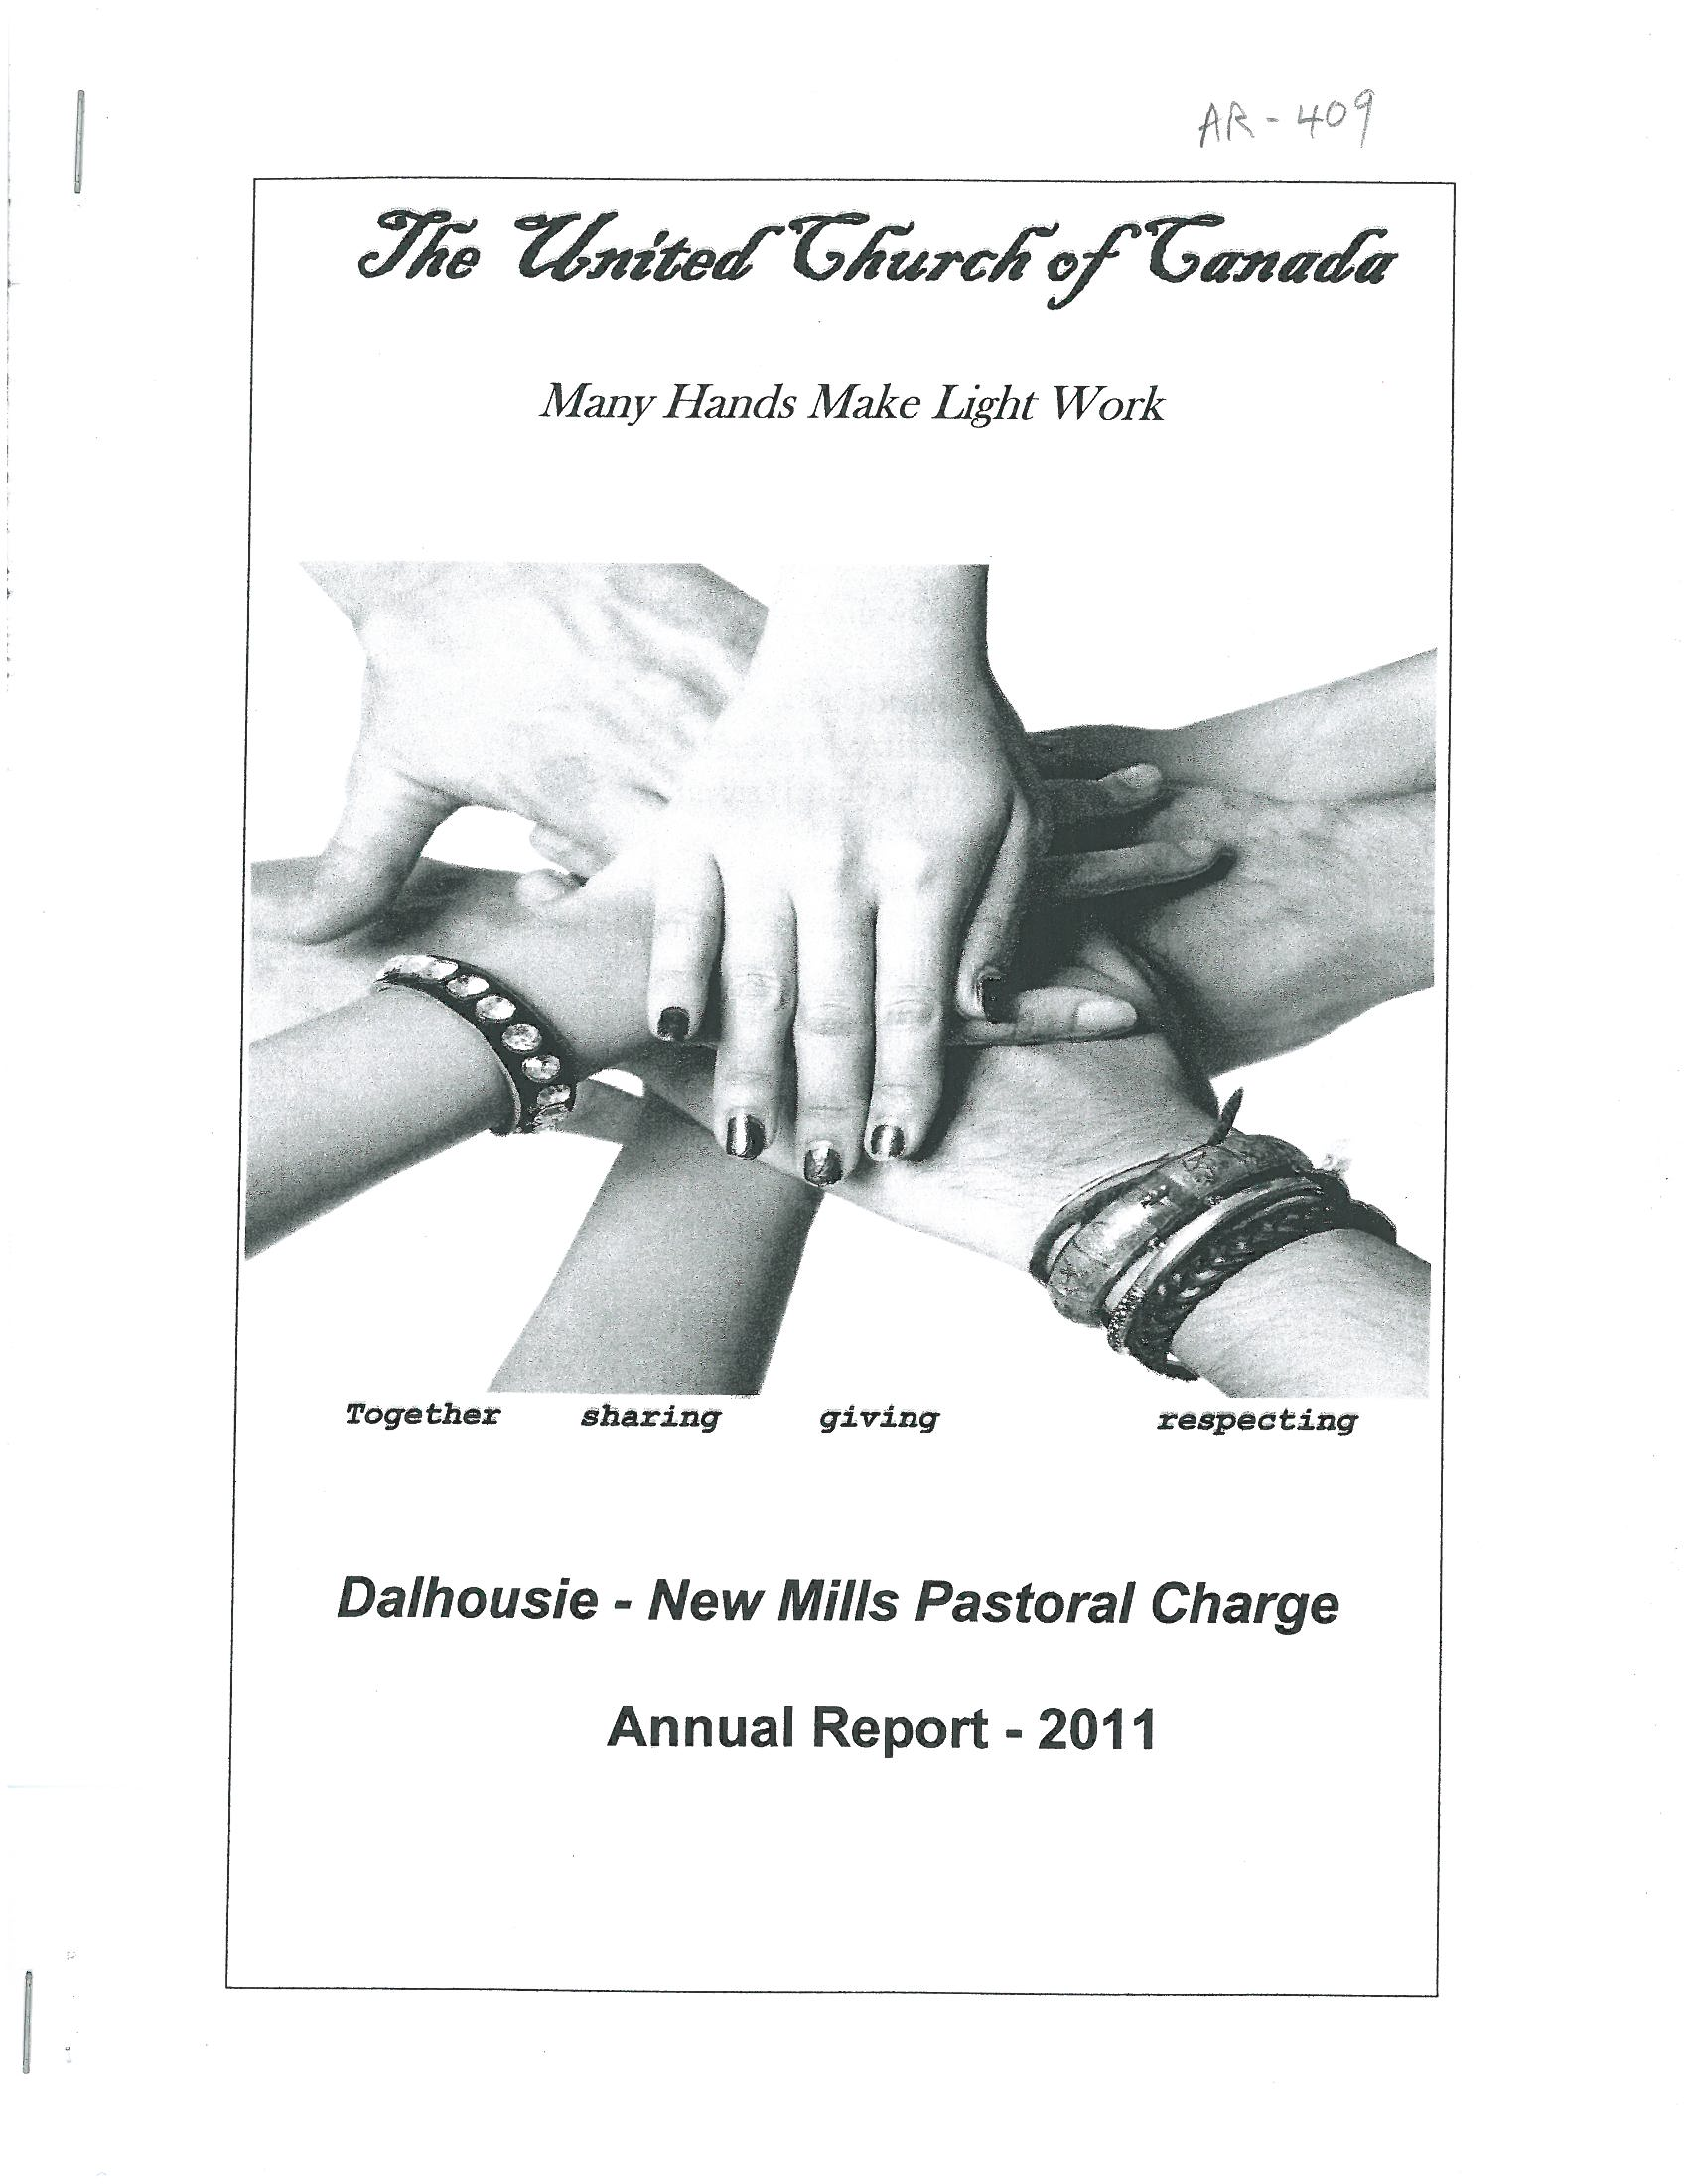 Dalhousie-New Mills Pastoral Charge records listing